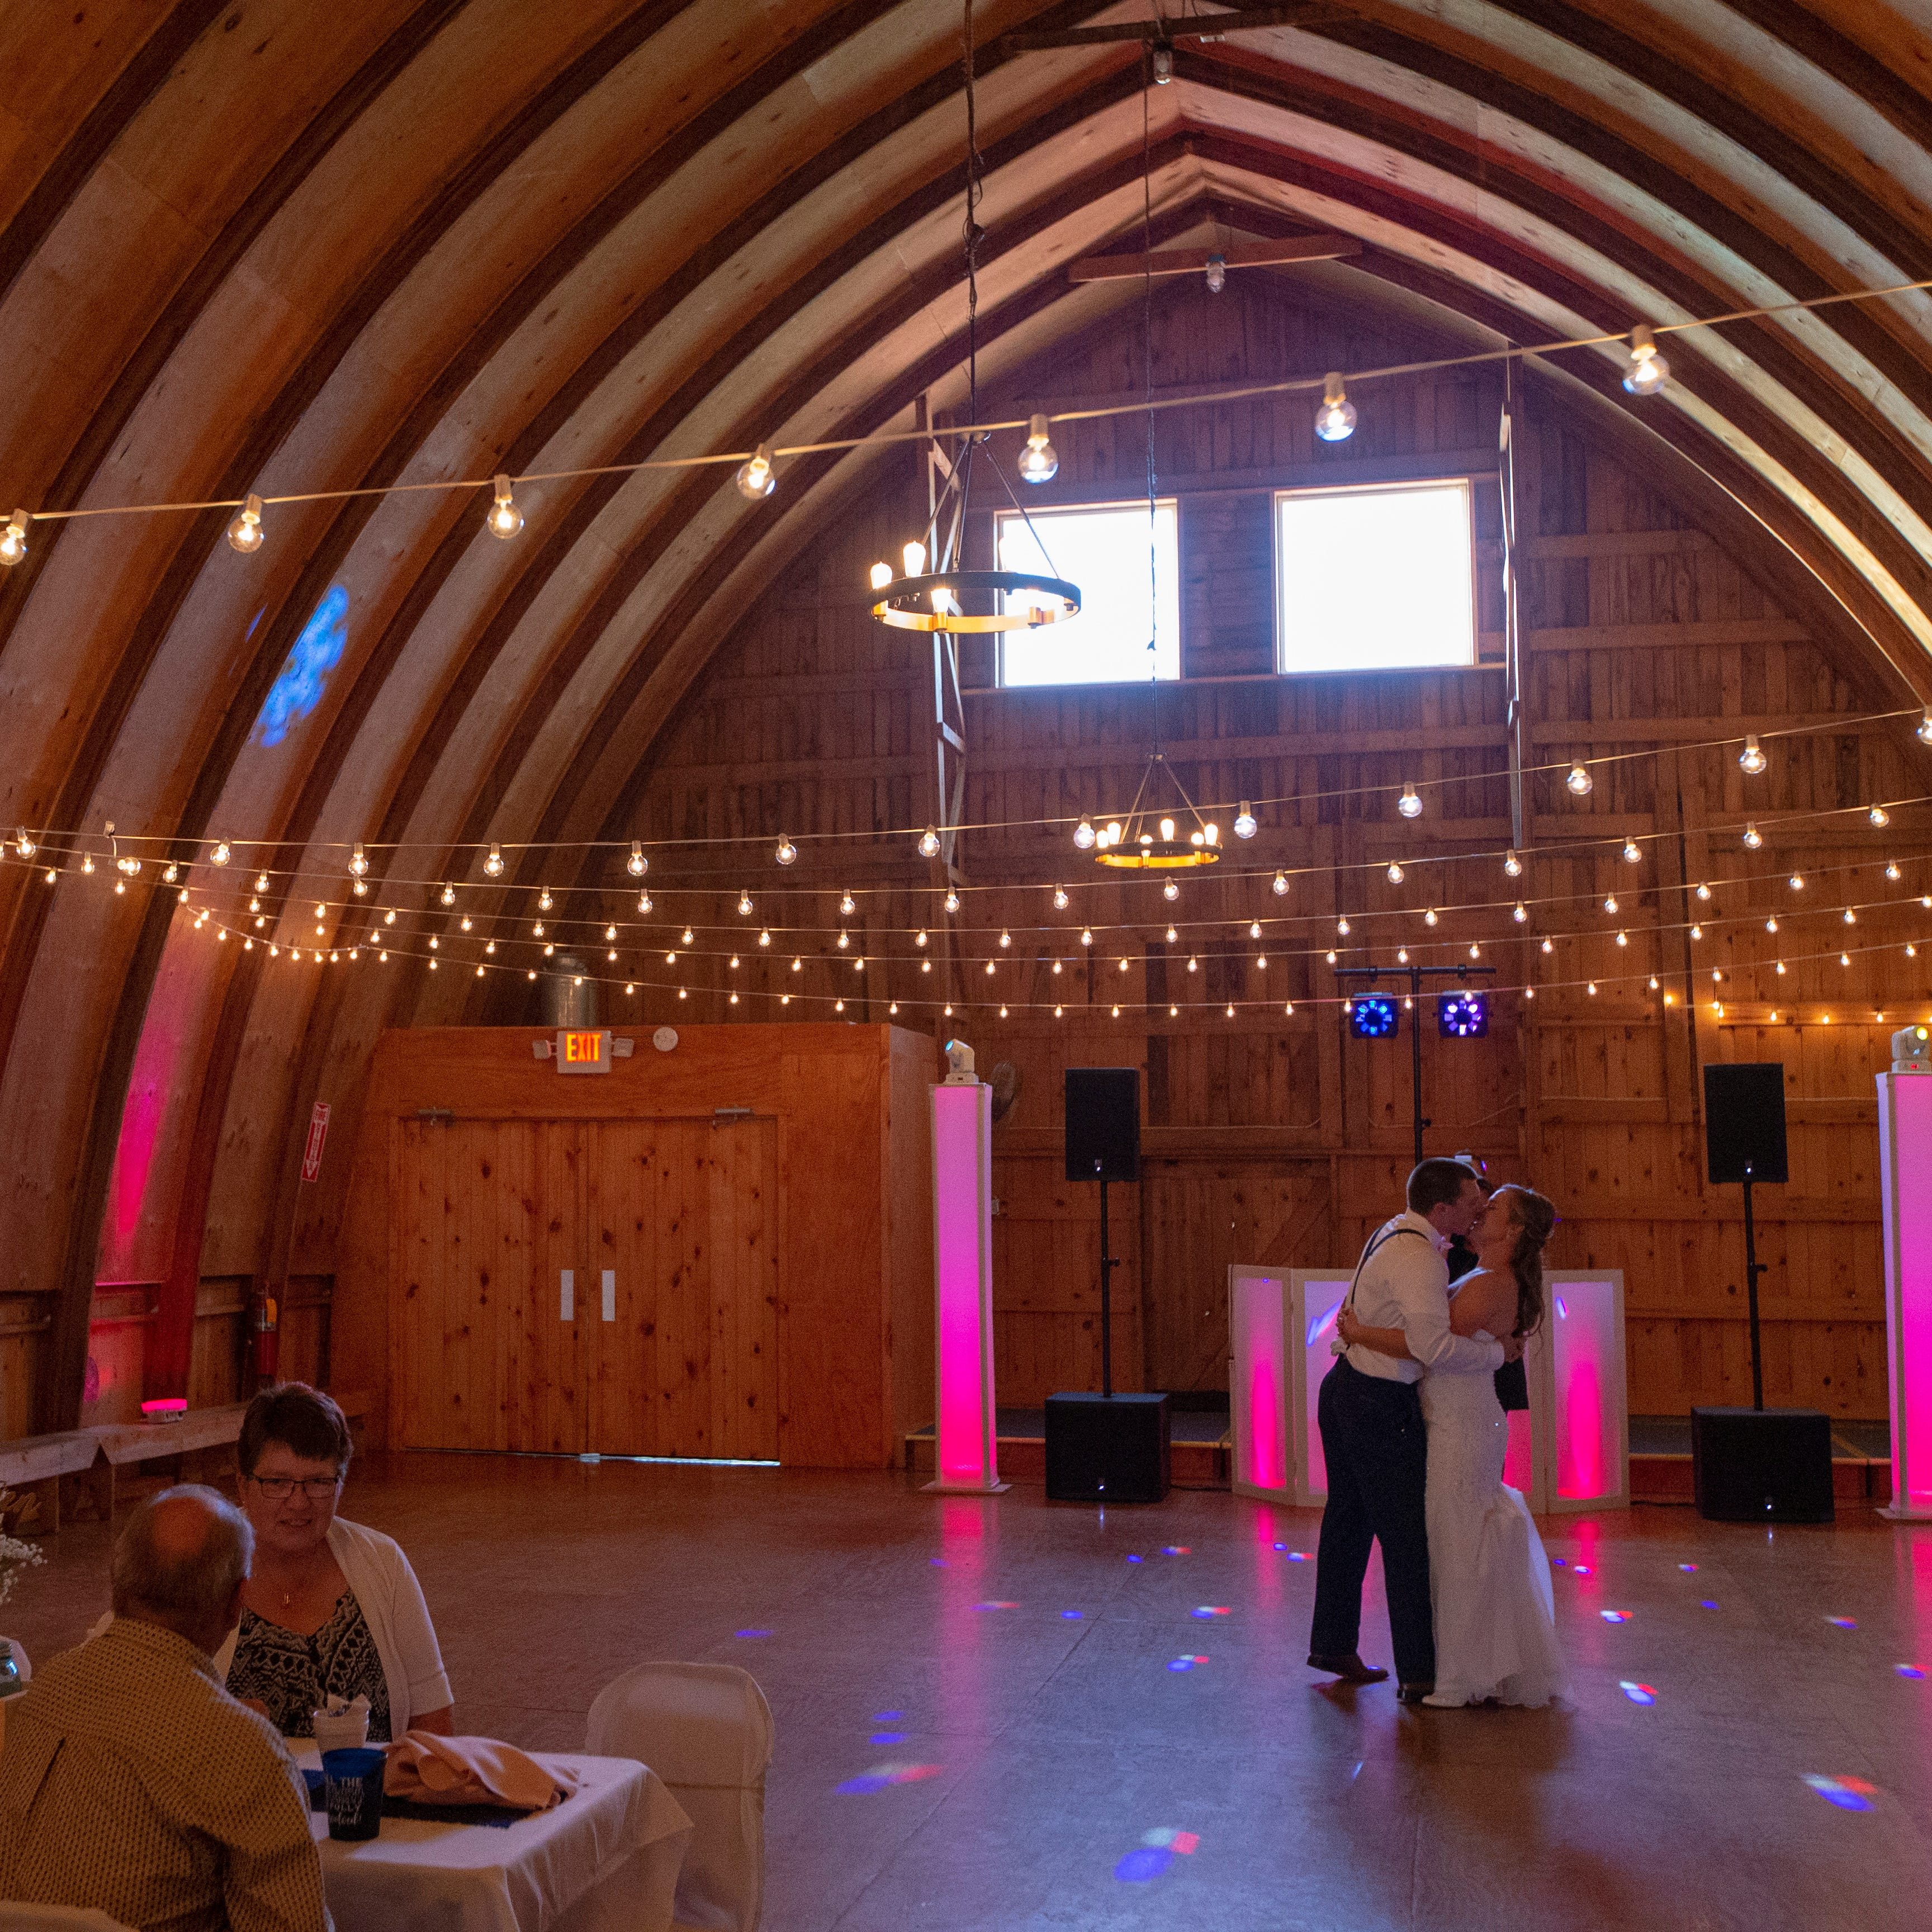 Wisconsin's old dairy barns are becoming the state's trendiest wedding venues